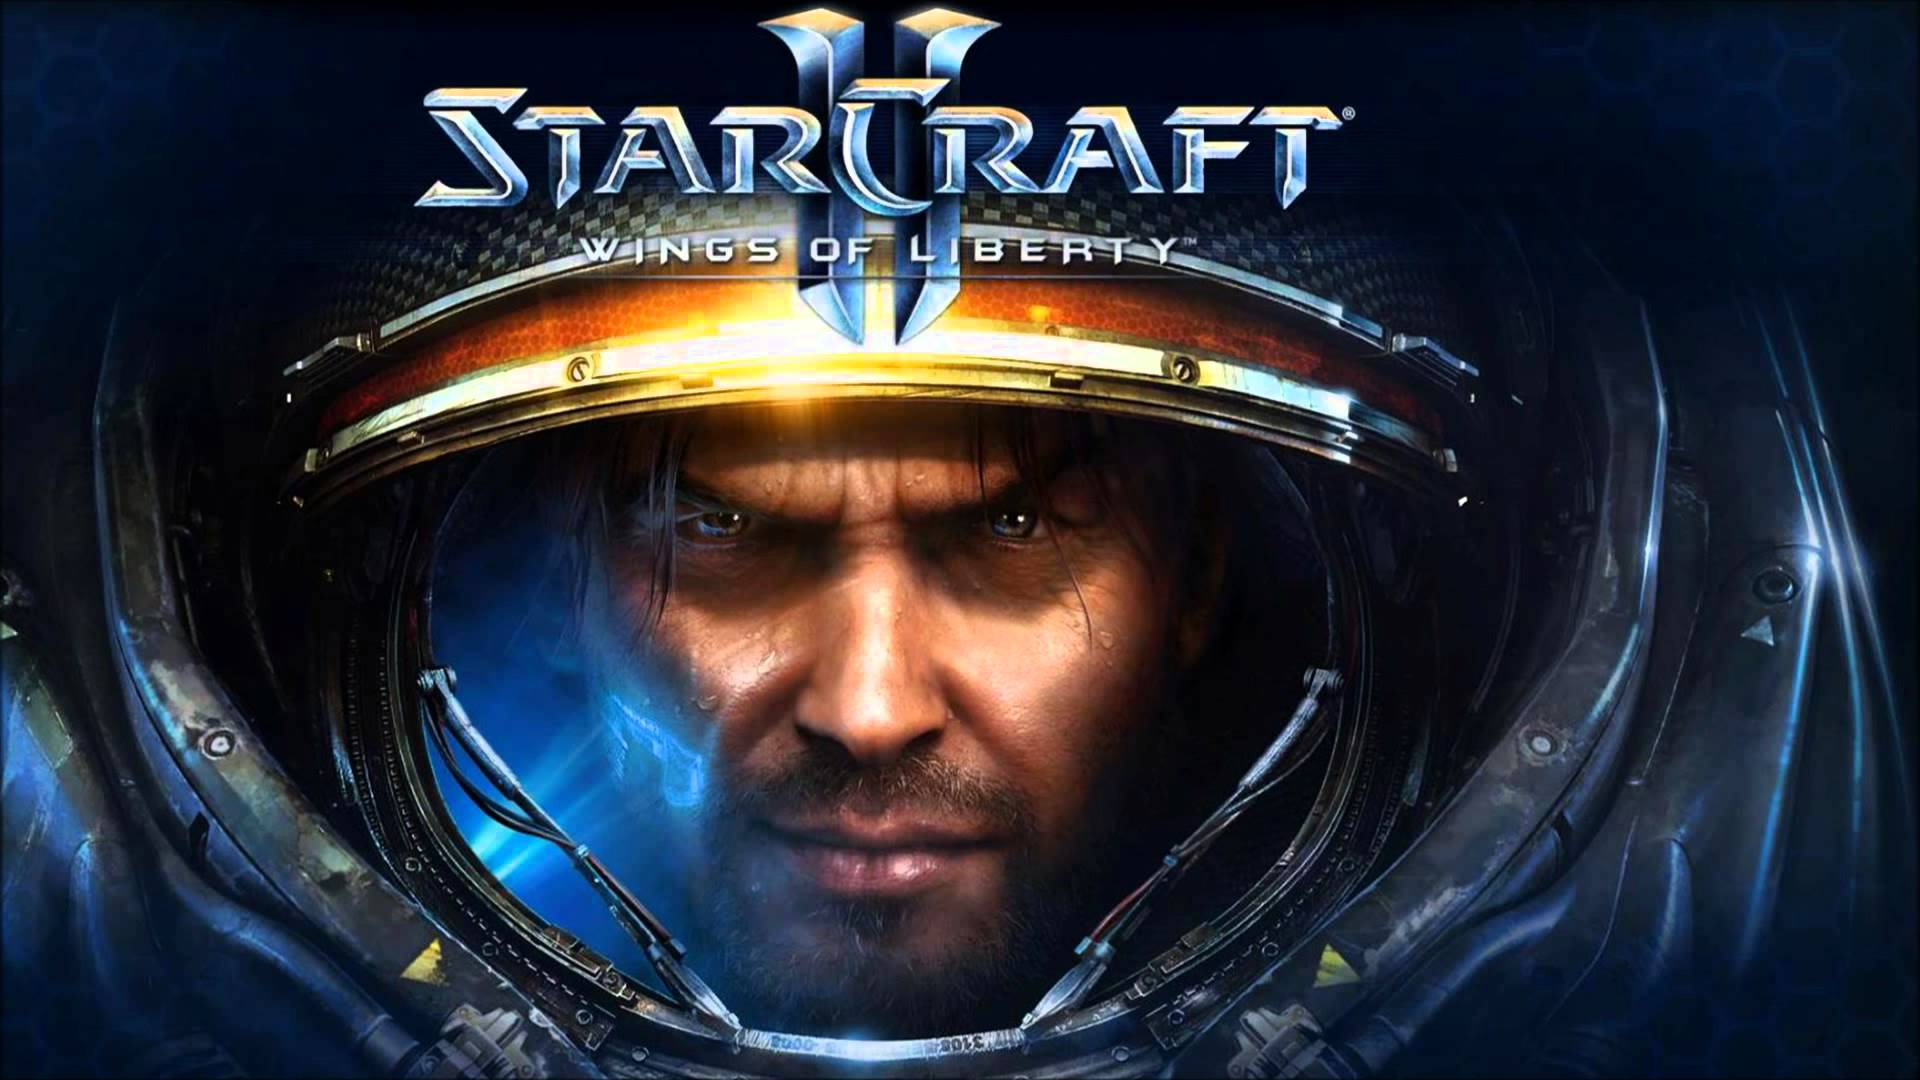 Starcraft II - is a complex online strategy game. I achieved the rank of Grandmaster, awarded to the top 200 players in the world.